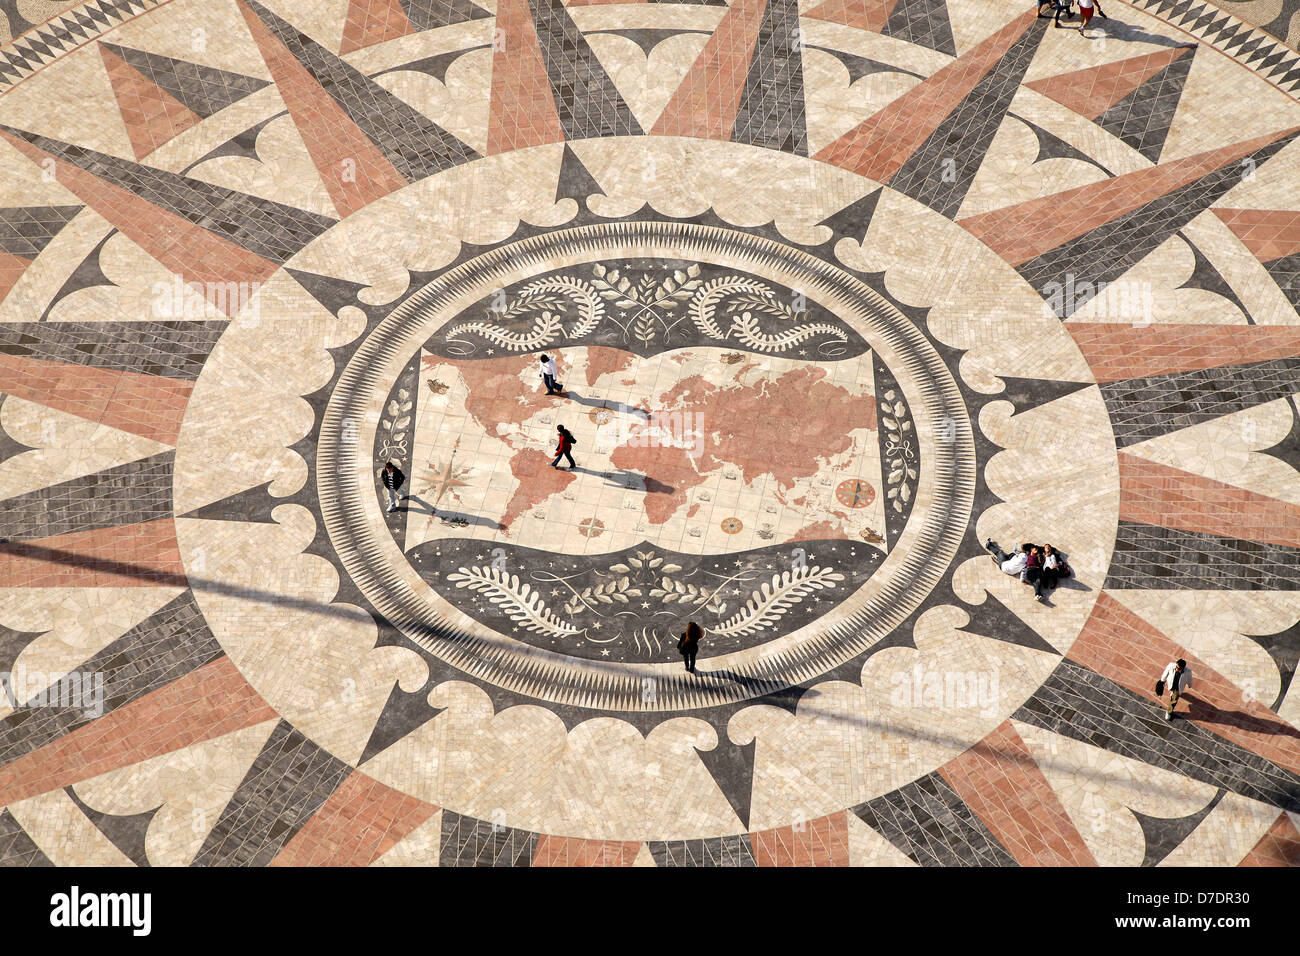 giant mosaic with Compass rose and world map at the Monument to the Discoveries Padrao dos Descobrimentos in Belem, - Stock Image